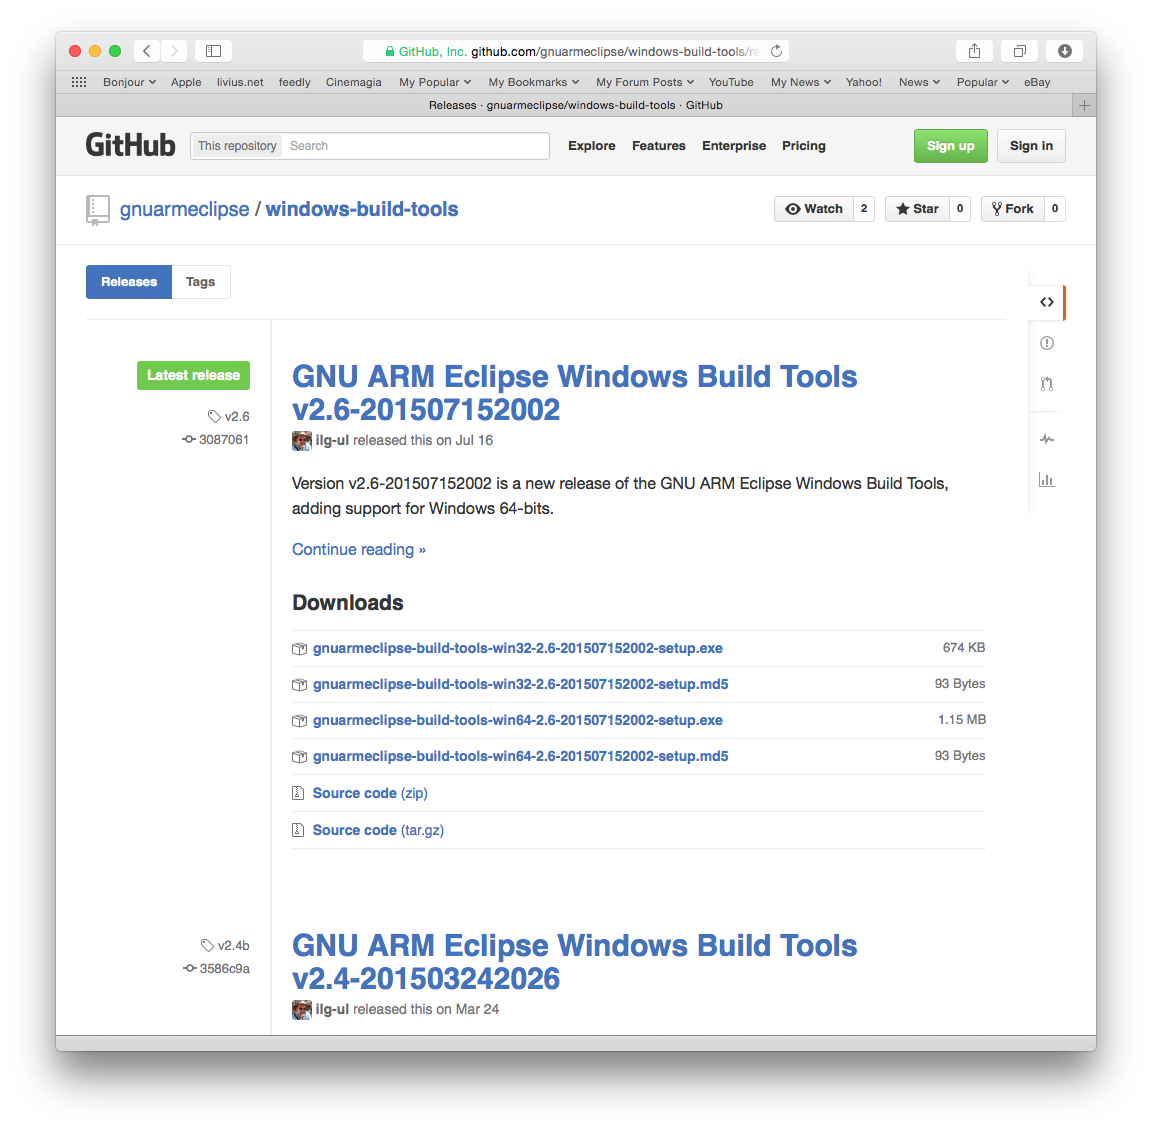 Windows Build Tools Releases